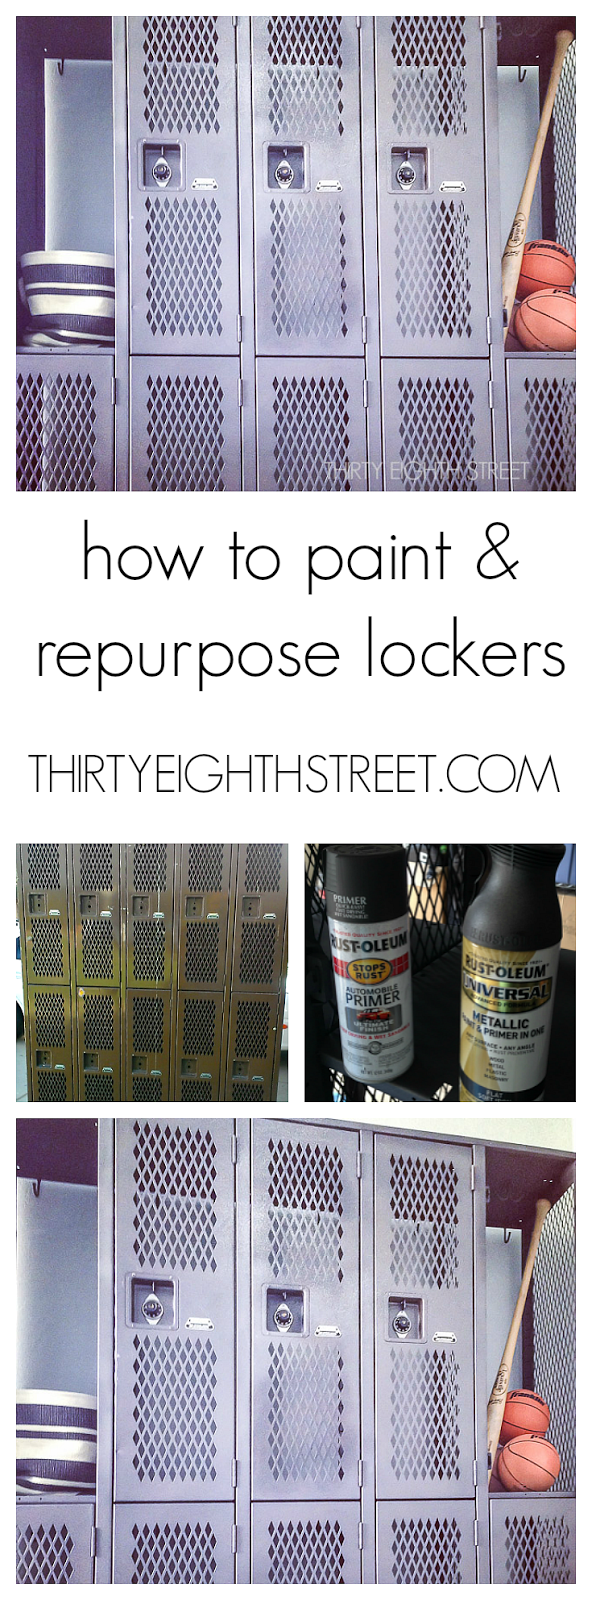 Painting Metal Lockers, Diy, How To Prep Metal Storage Lockers, Give Lockers  An